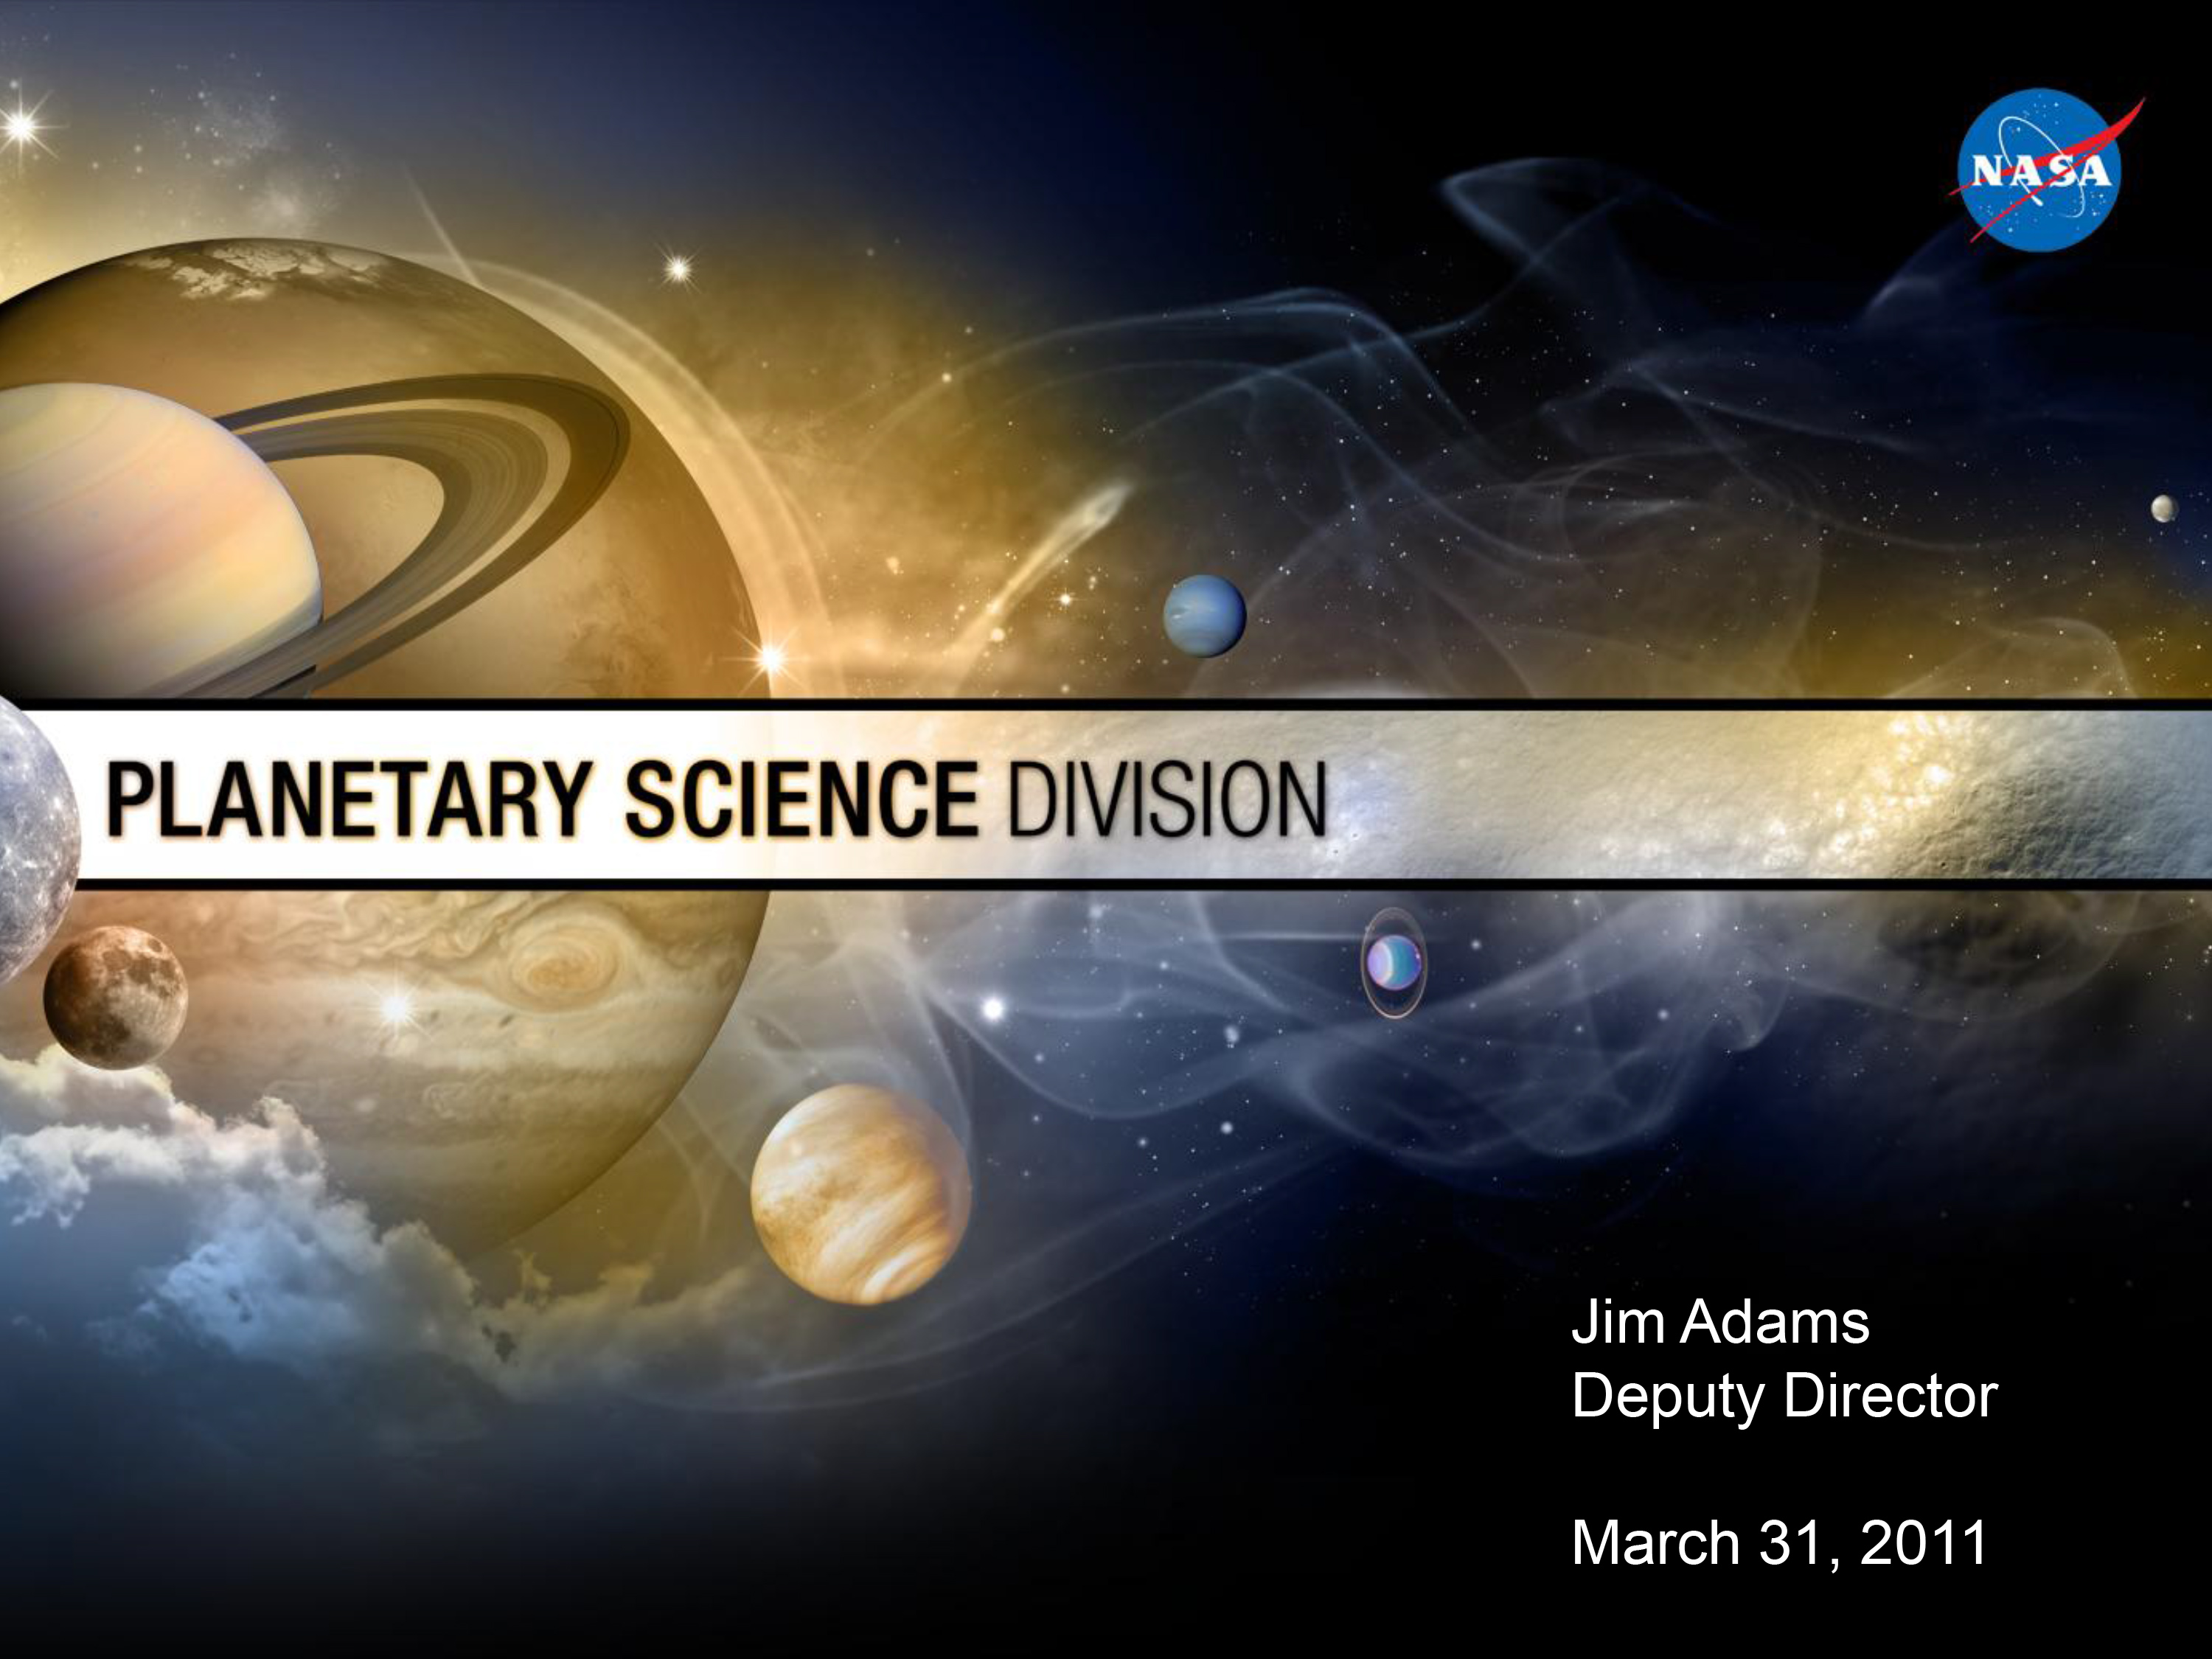 Presentation by Planetary Science Division Deputy Director Jim Adams at New York City Town Hall